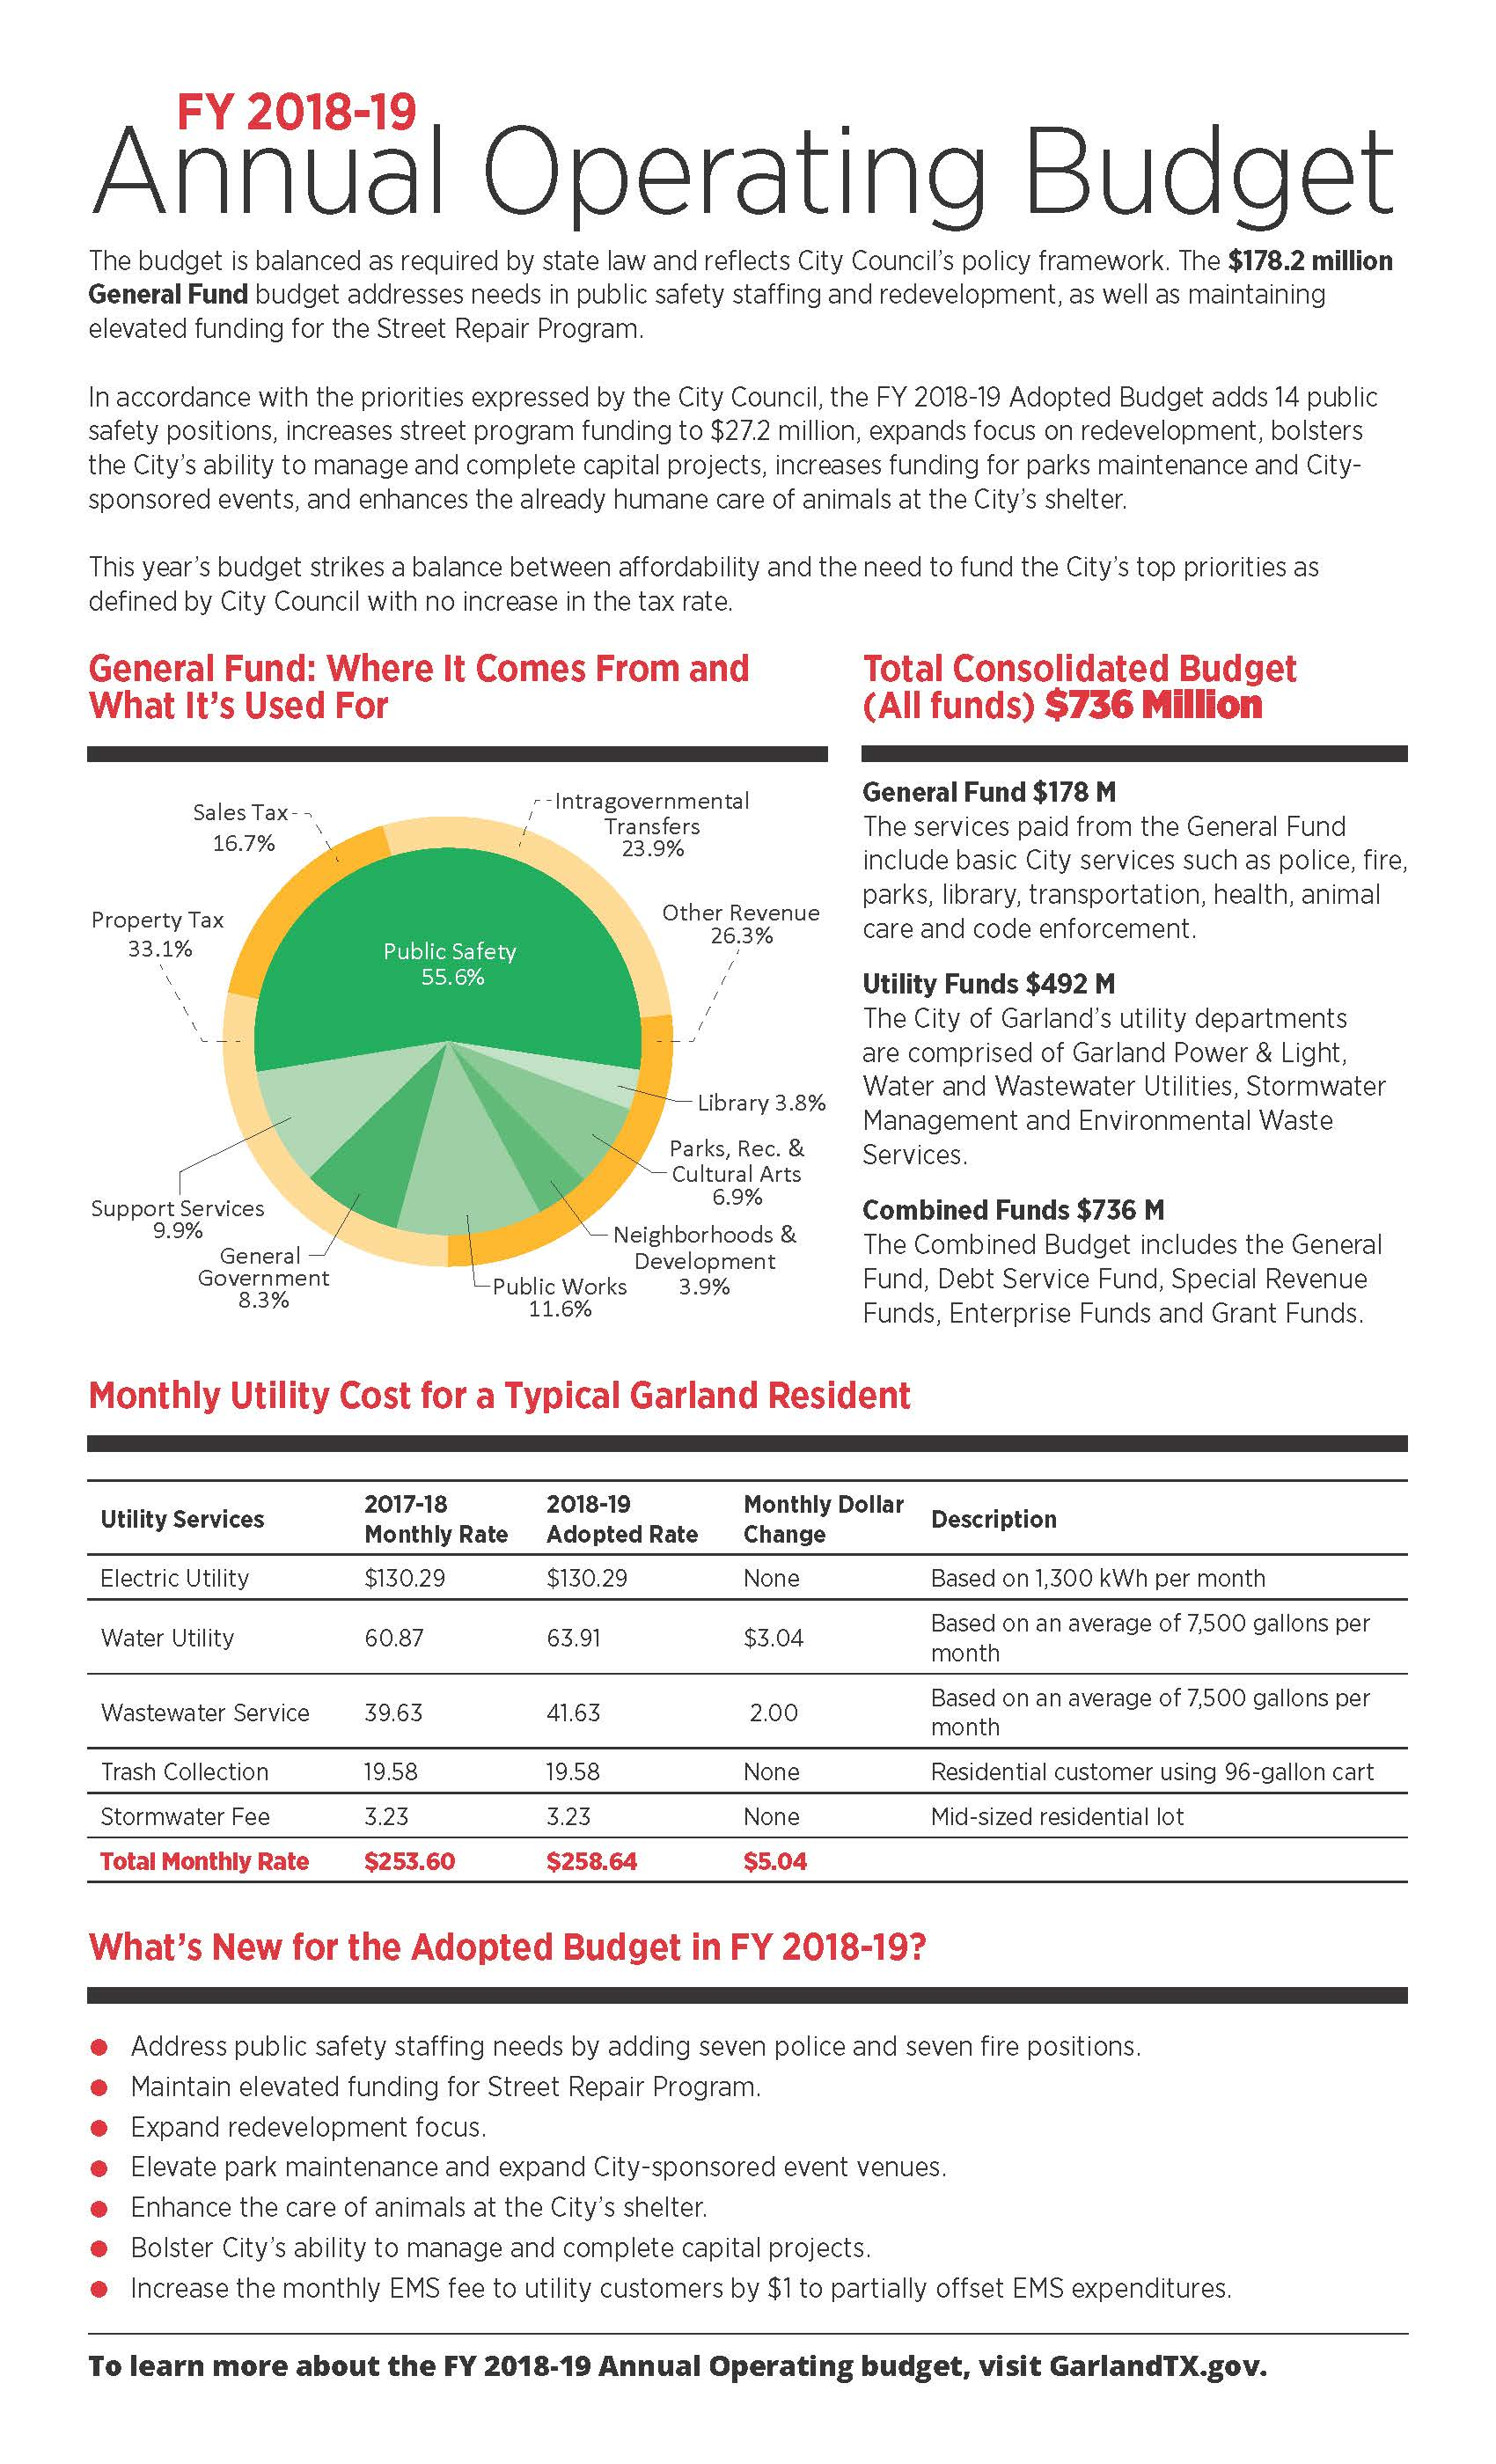 Click link below for readable .PDF of the 2018 - 2019 Annual Operating Budget Summary